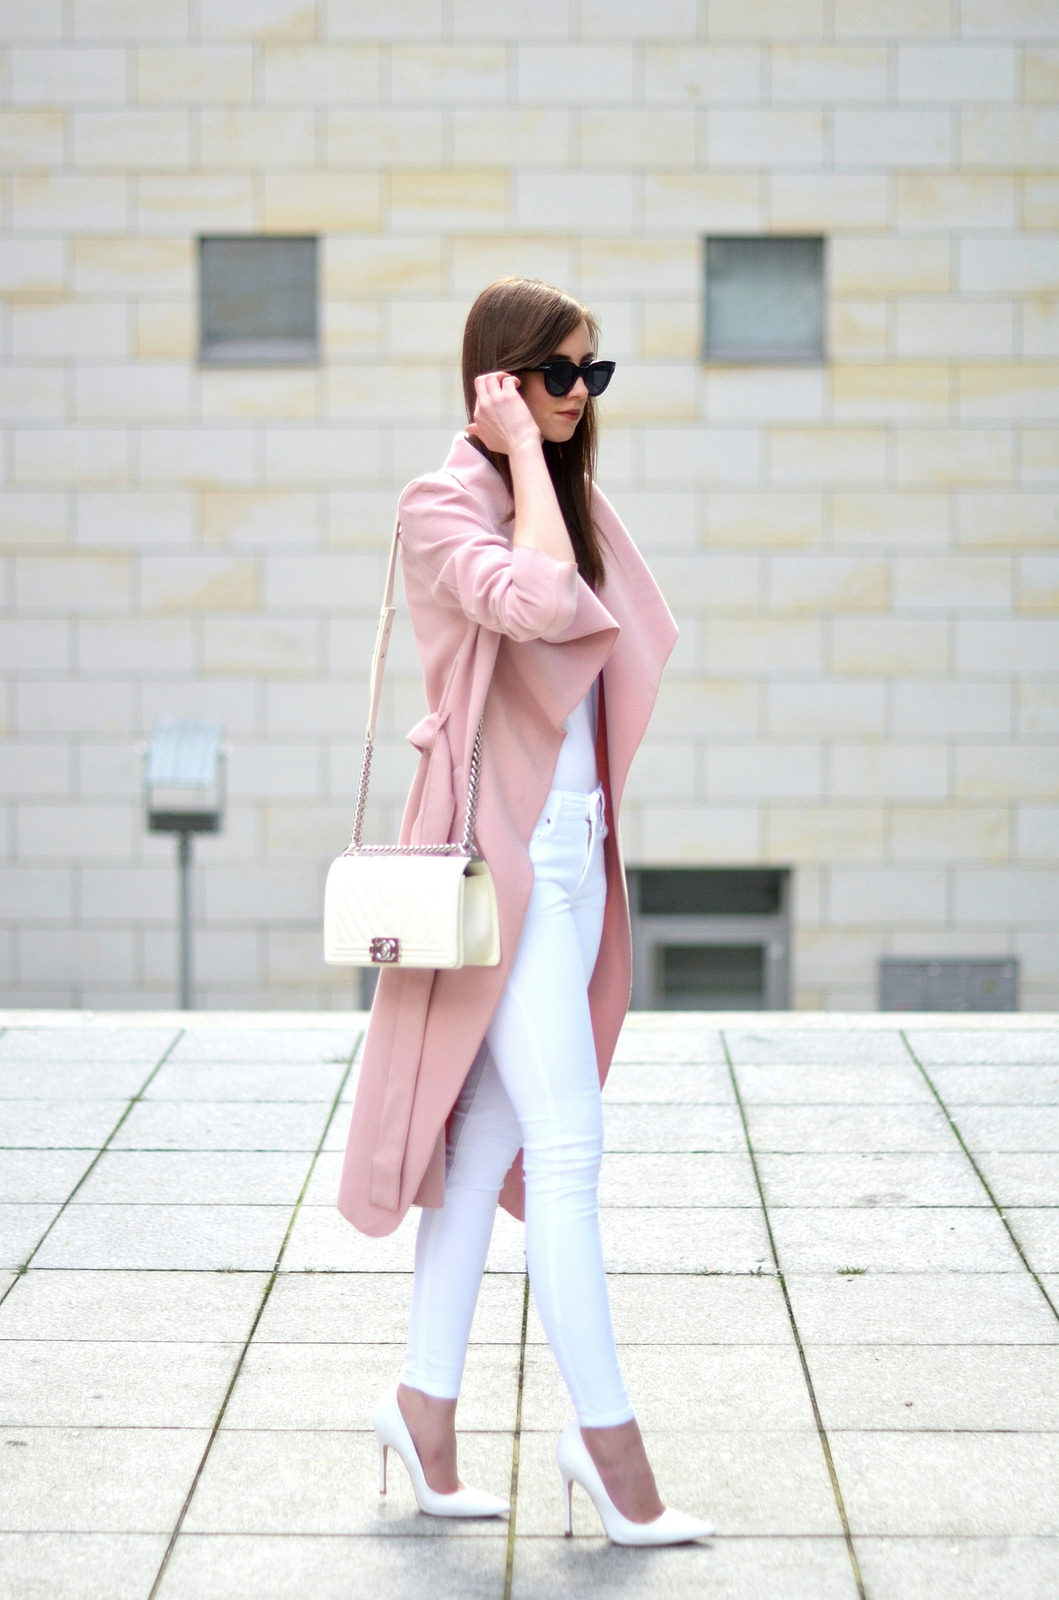 Blush pink is the way to go this spring! This gorgeous coat - paired stylishly with an otherwise all white outfit by Barbora Ondrackova - makes a statement of femininity and grace; we absolutely love it. Shirt: Acne, Jeans: Mango, Coat: Missguided, Heels: Topshop, Bag: Chanel.